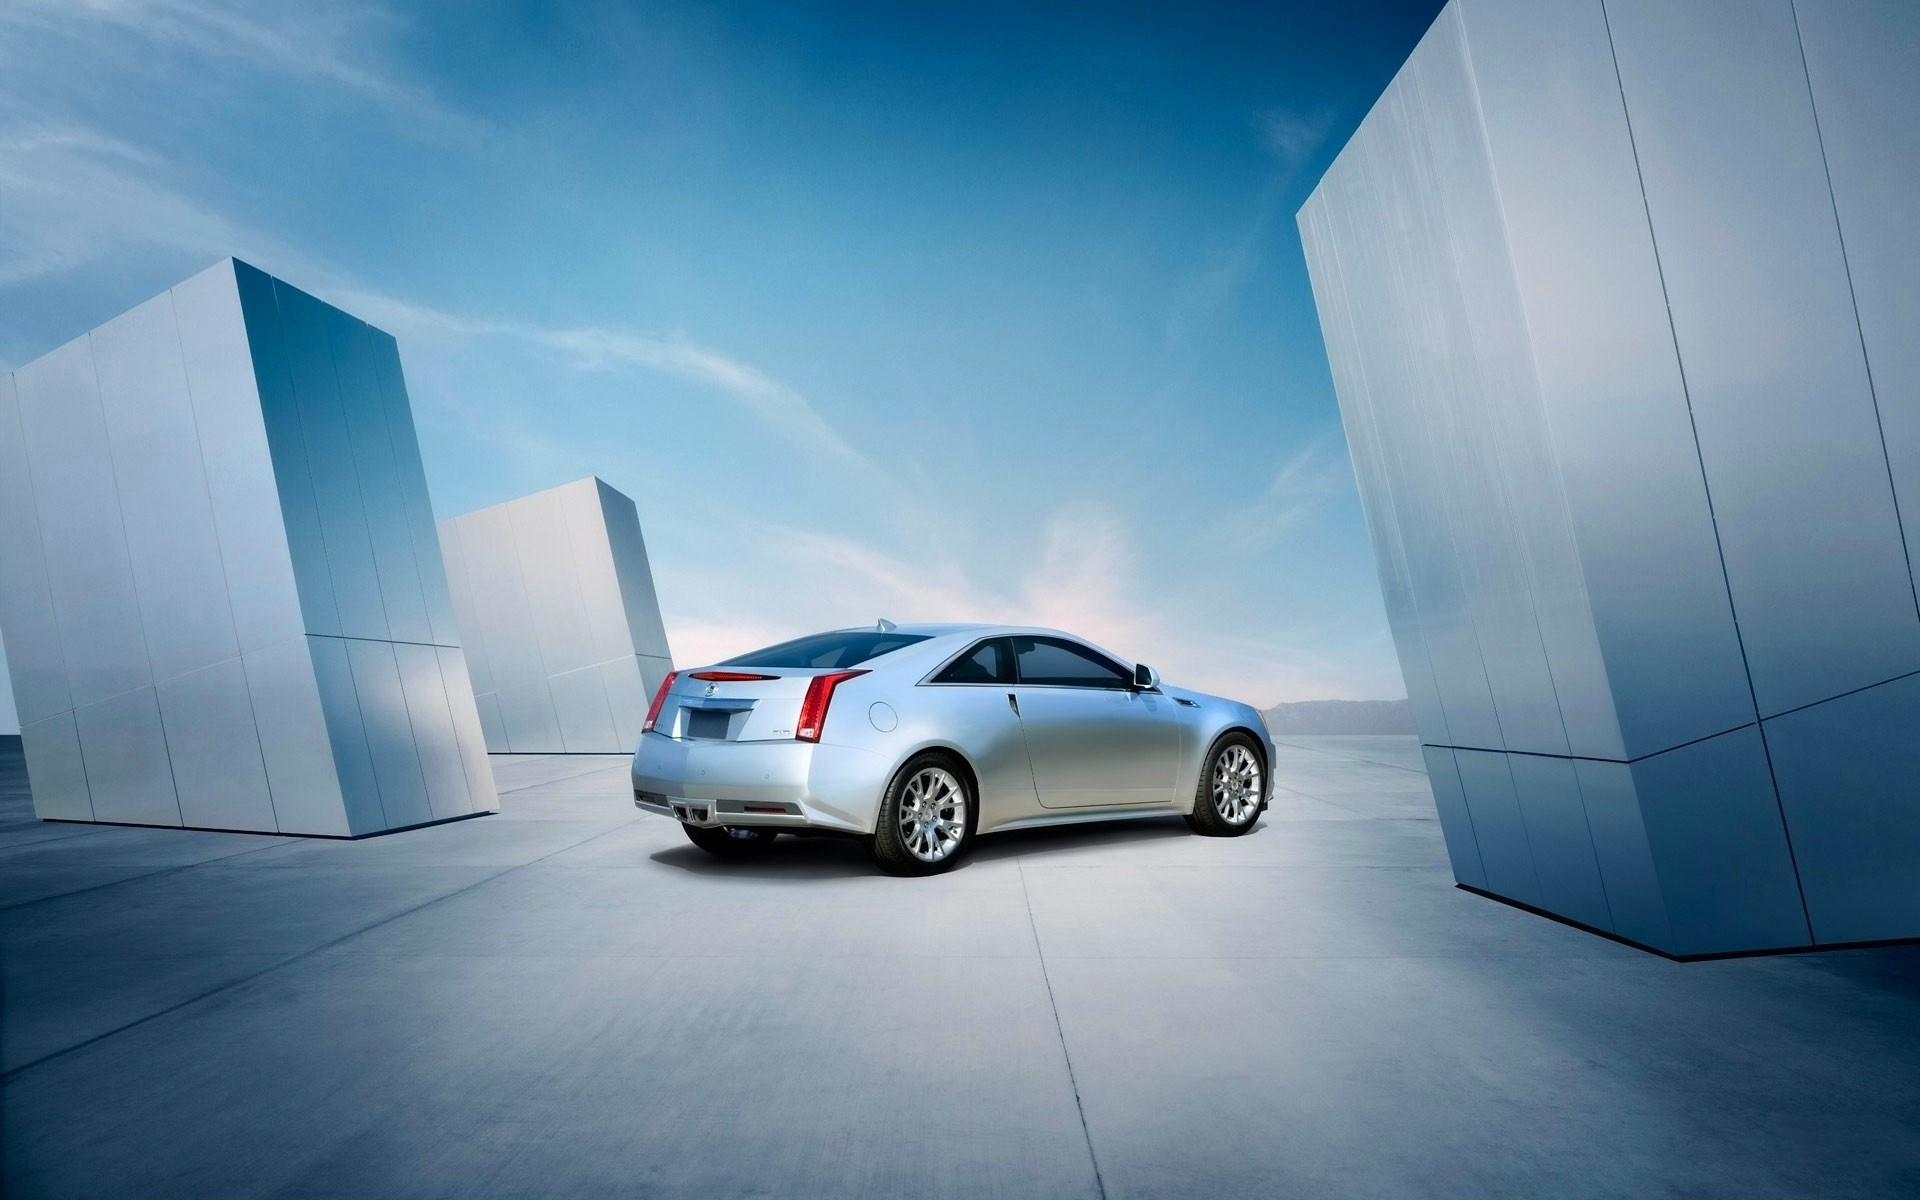 Gourgeous CTS Cadillac